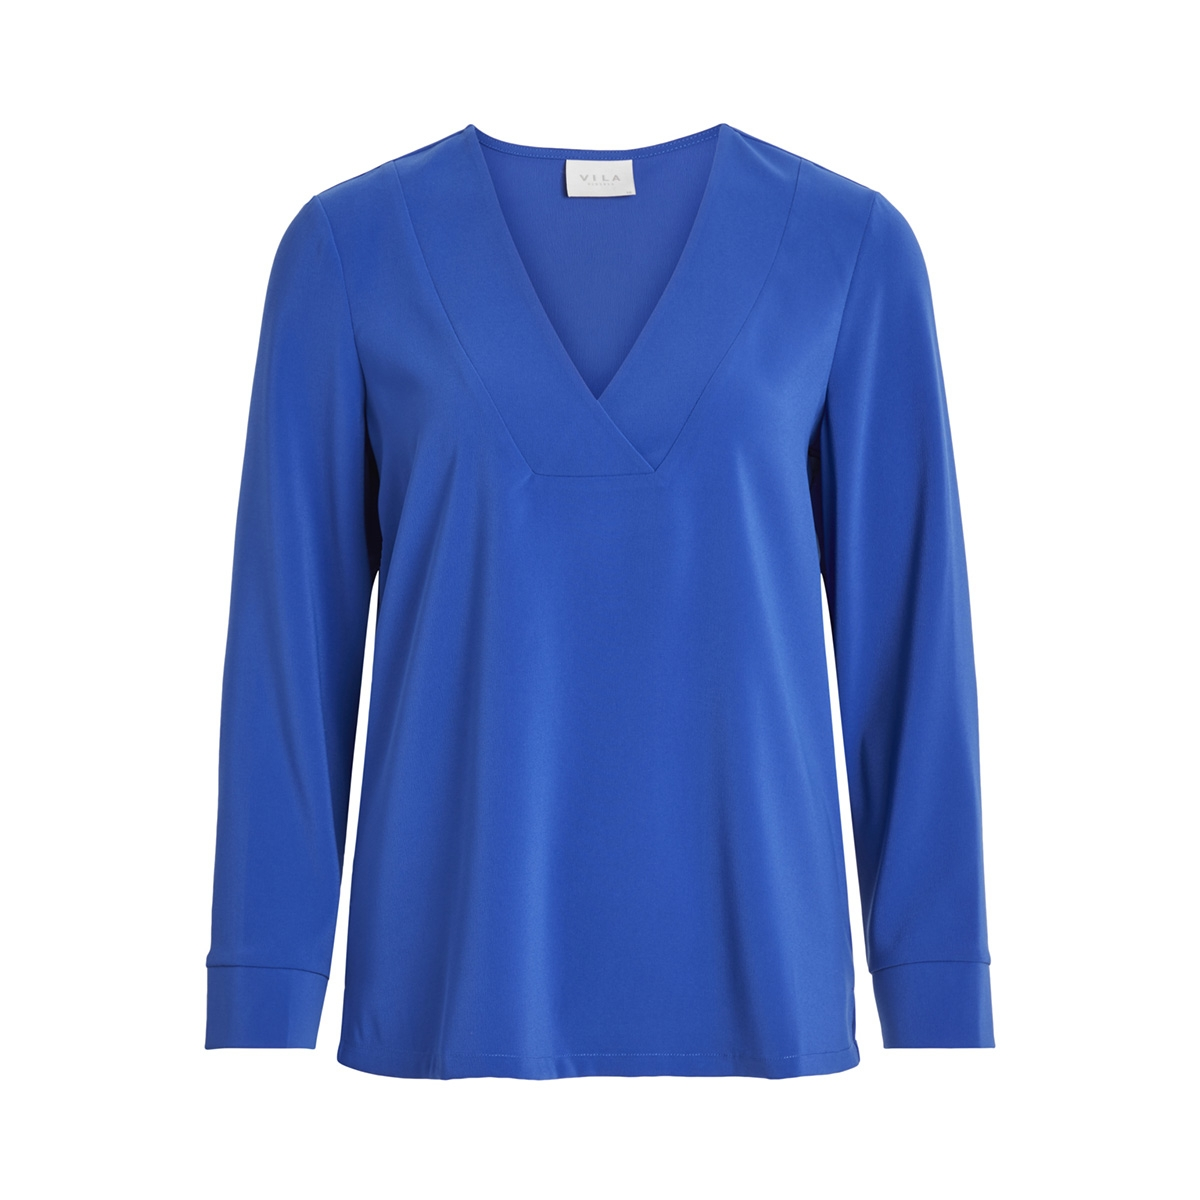 vilaia l/s top 14052015 vila blouse surf the web